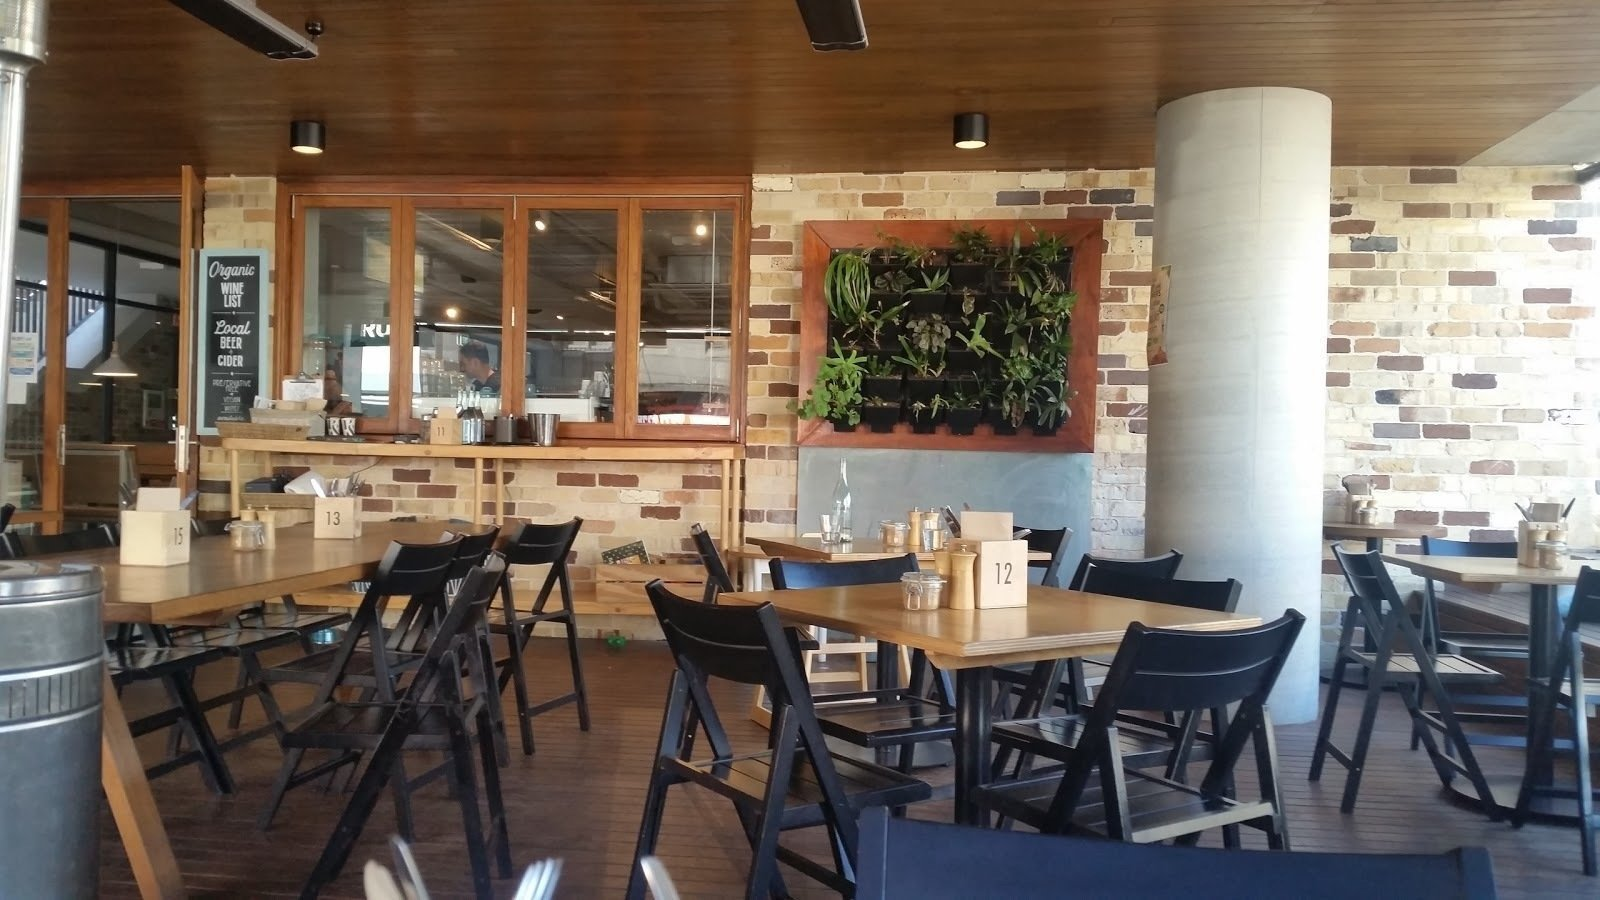 Ruby Lane Wholefoods: A Work-Friendly Place in Manly